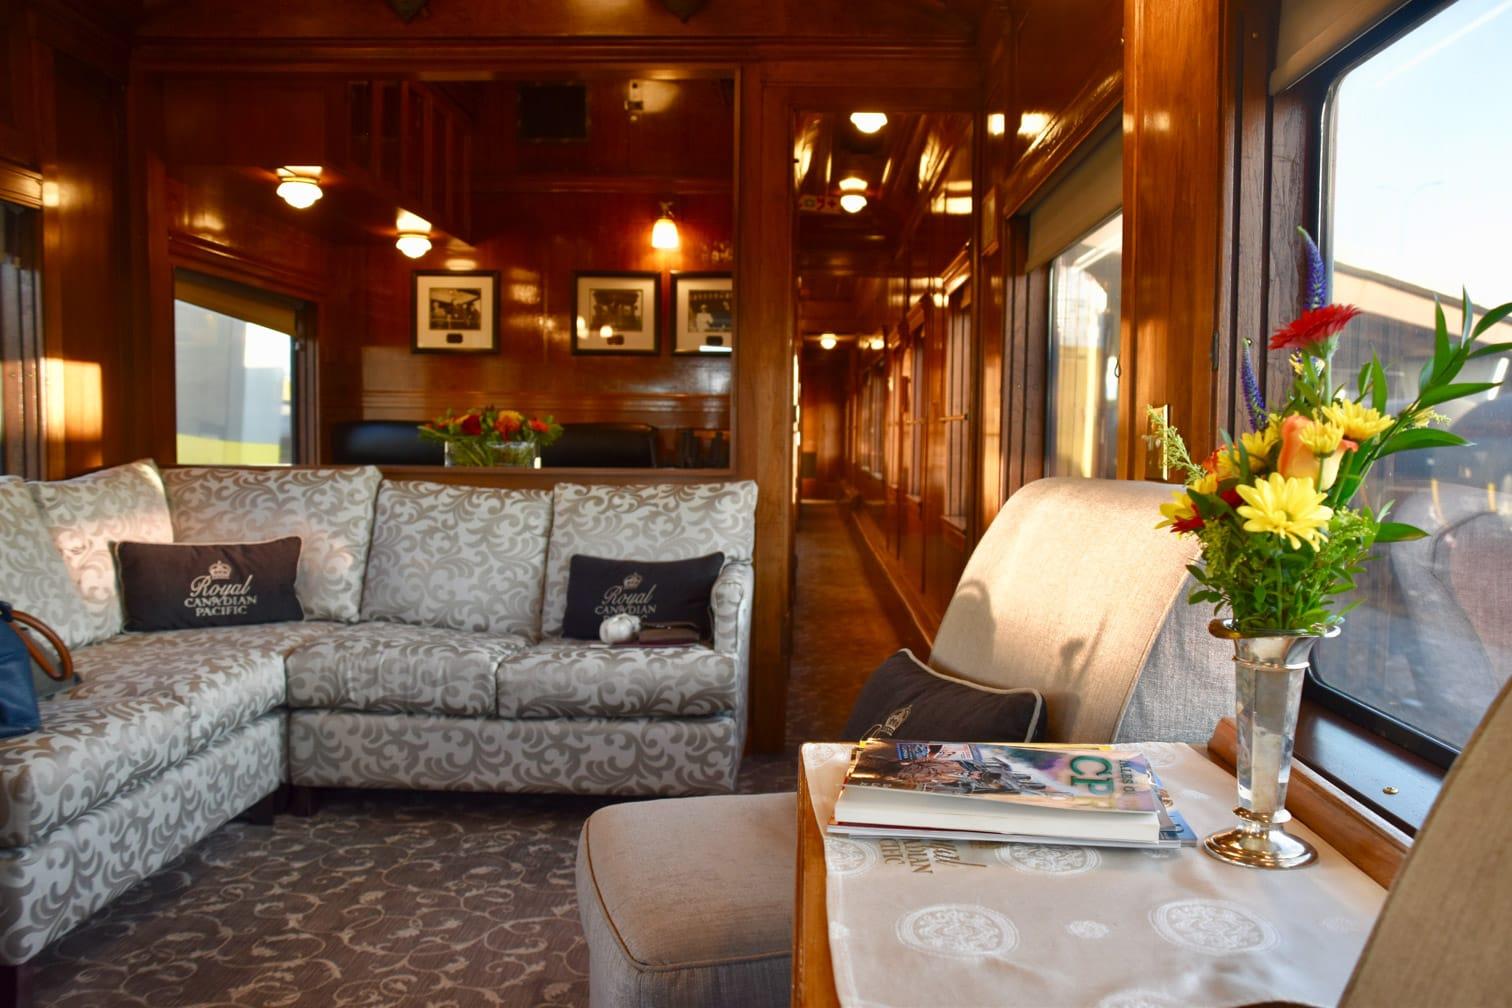 Lounge on the Royal Canadian Pacific train